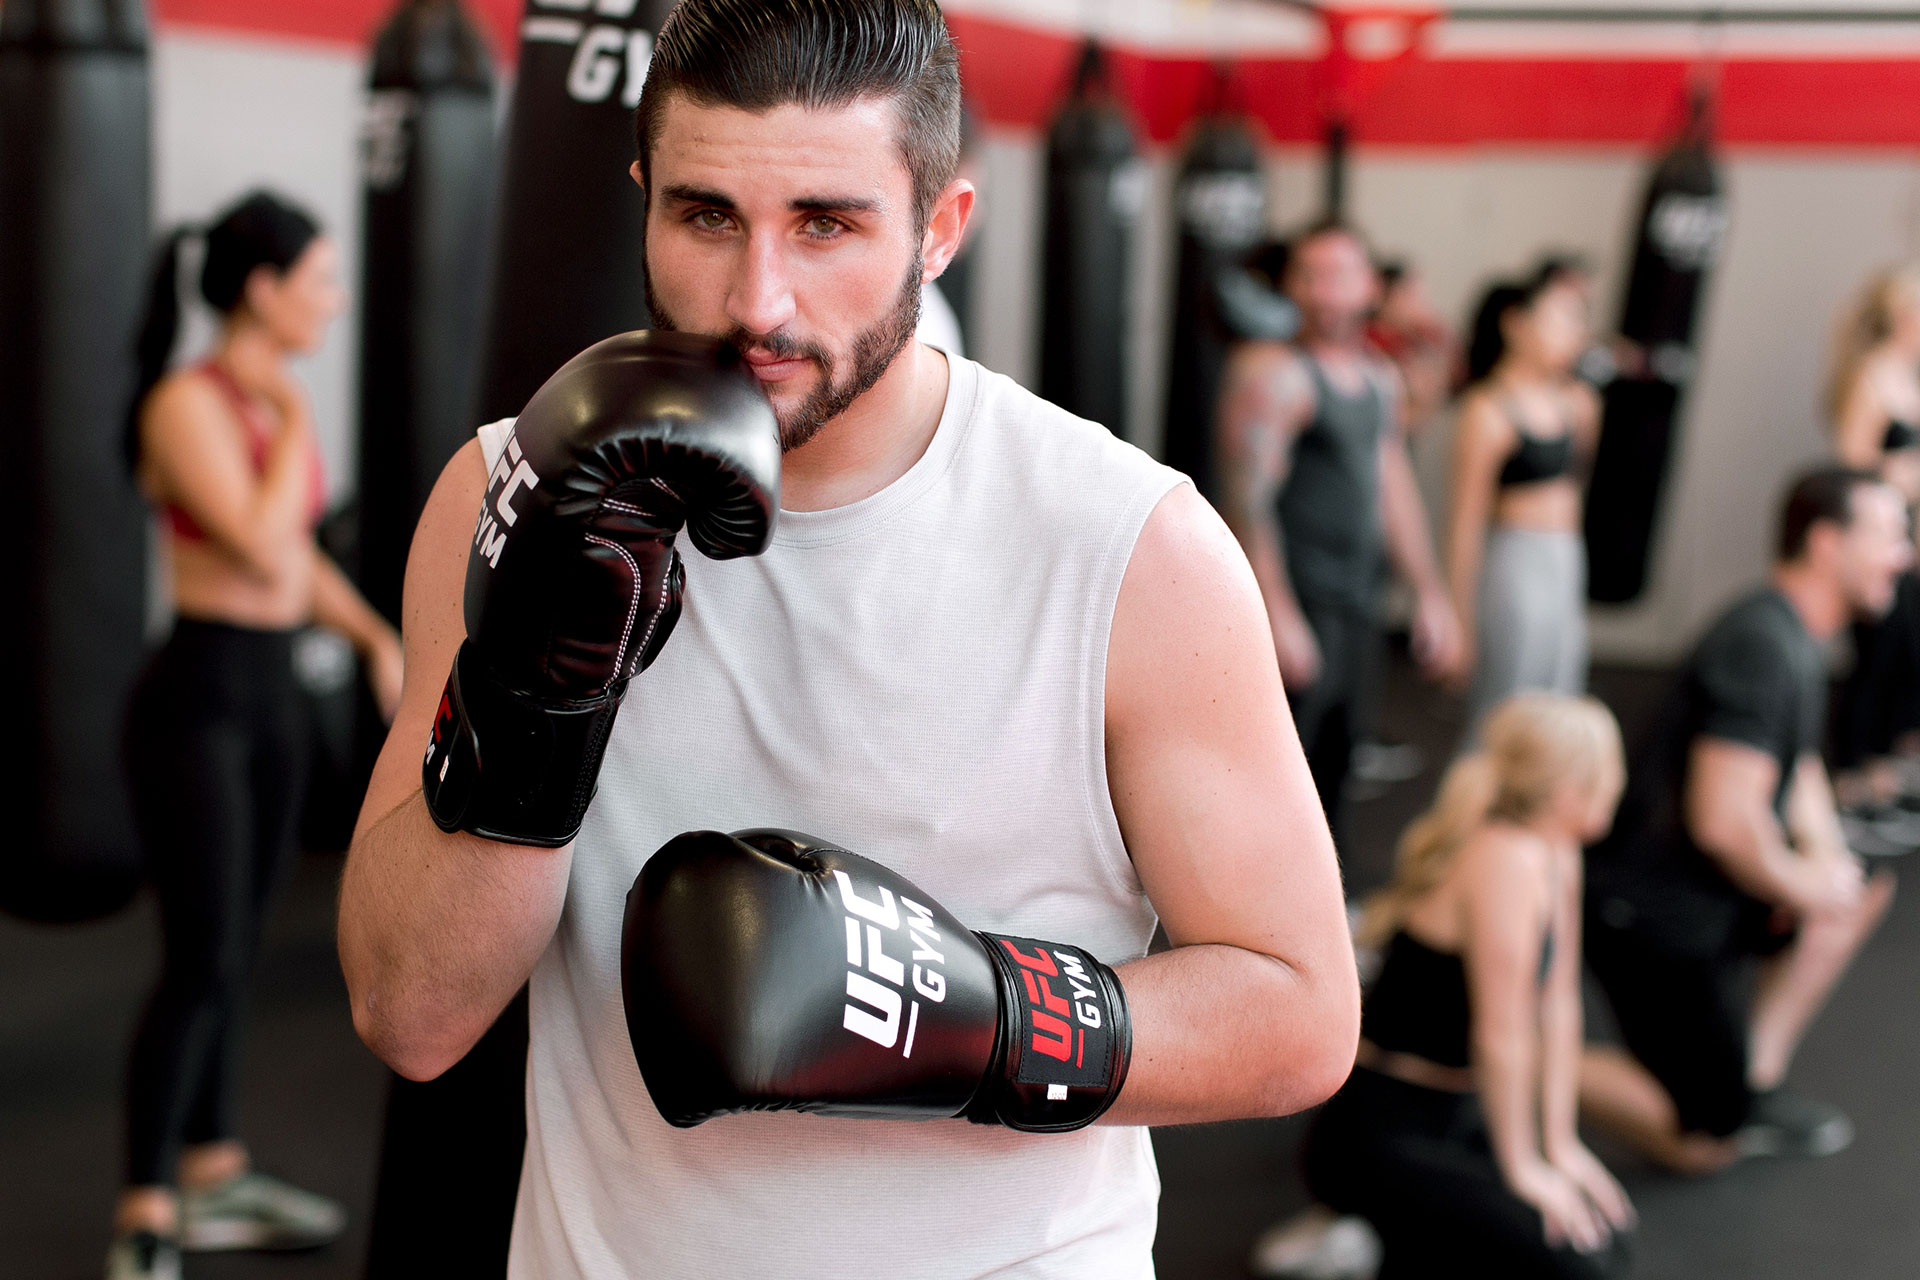 A member with boxing gloves on